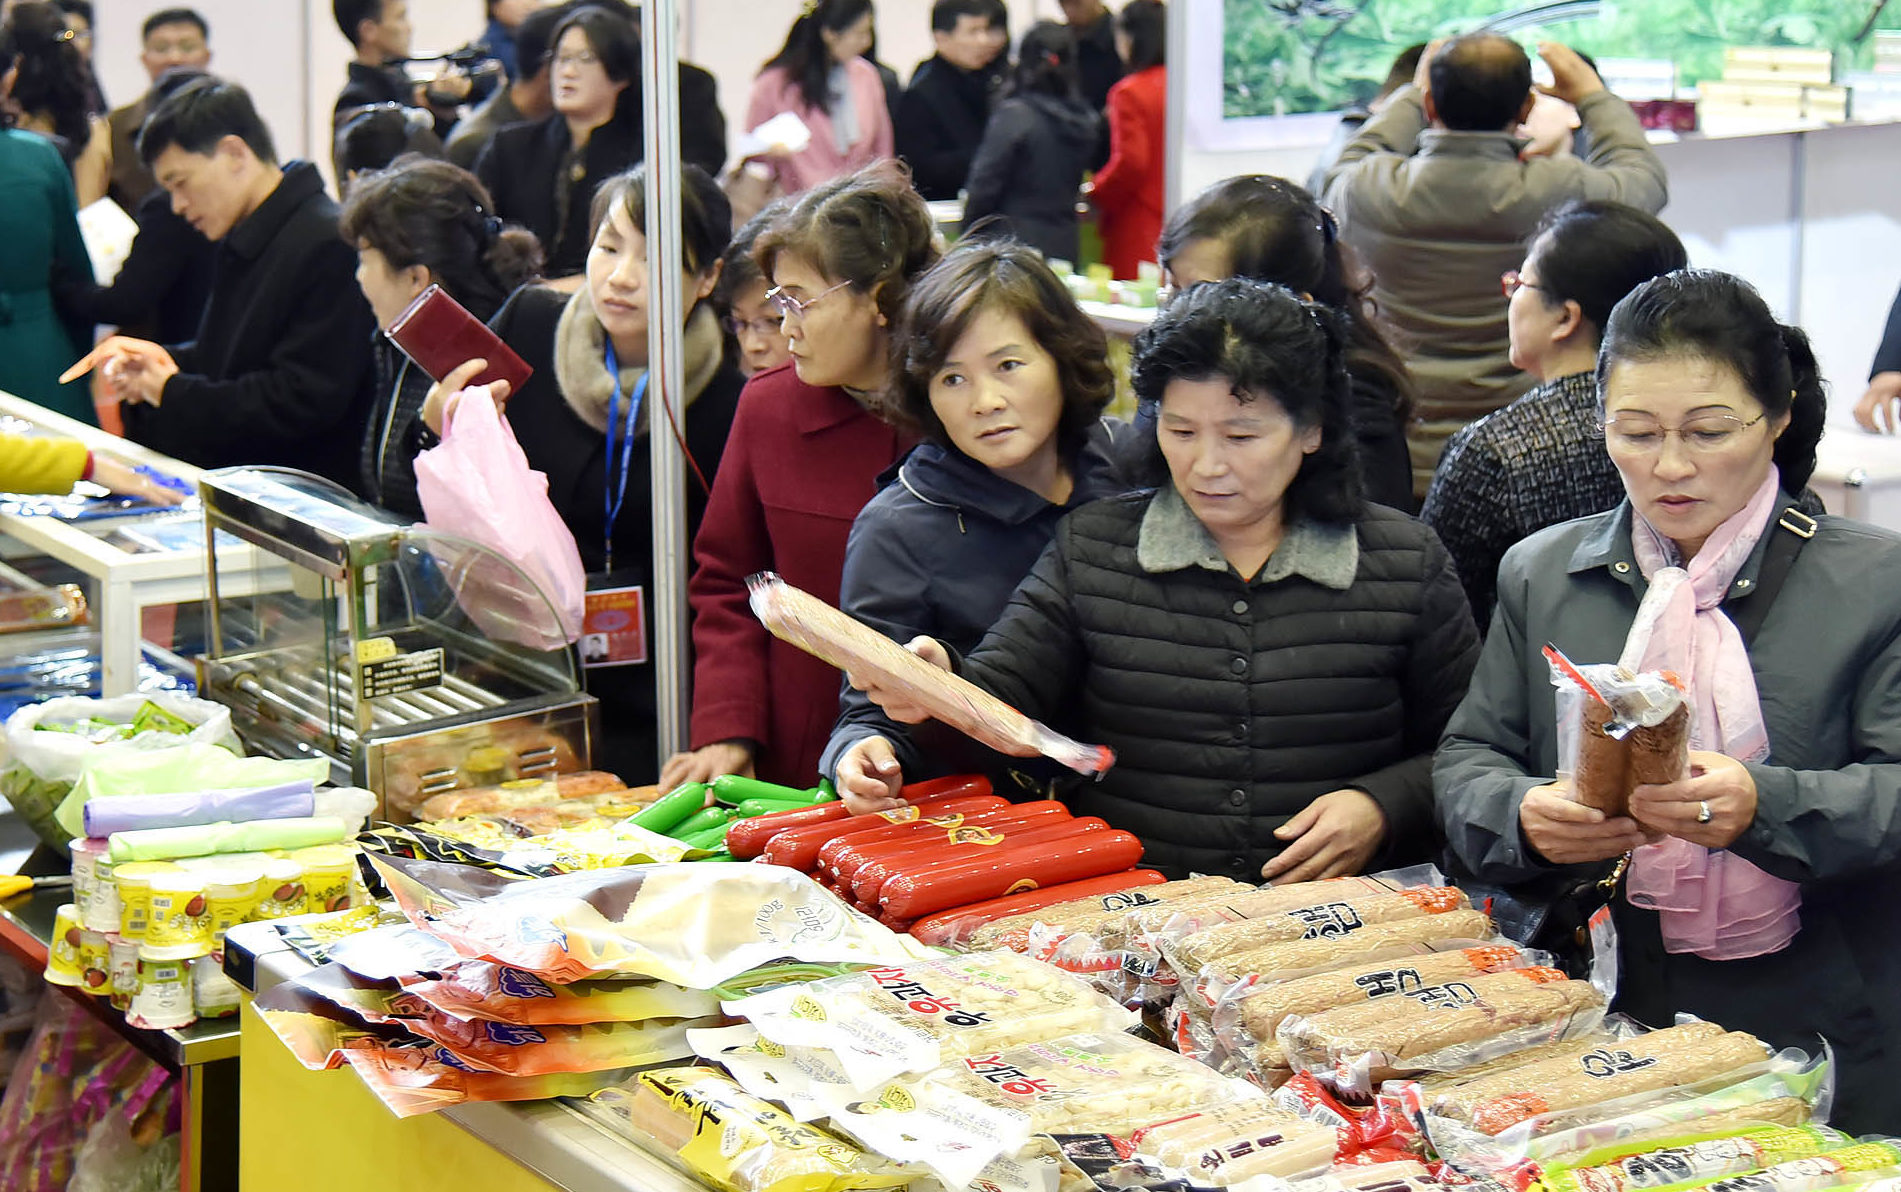 Another new international foodstuffs exhibition wraps up in Pyongyang